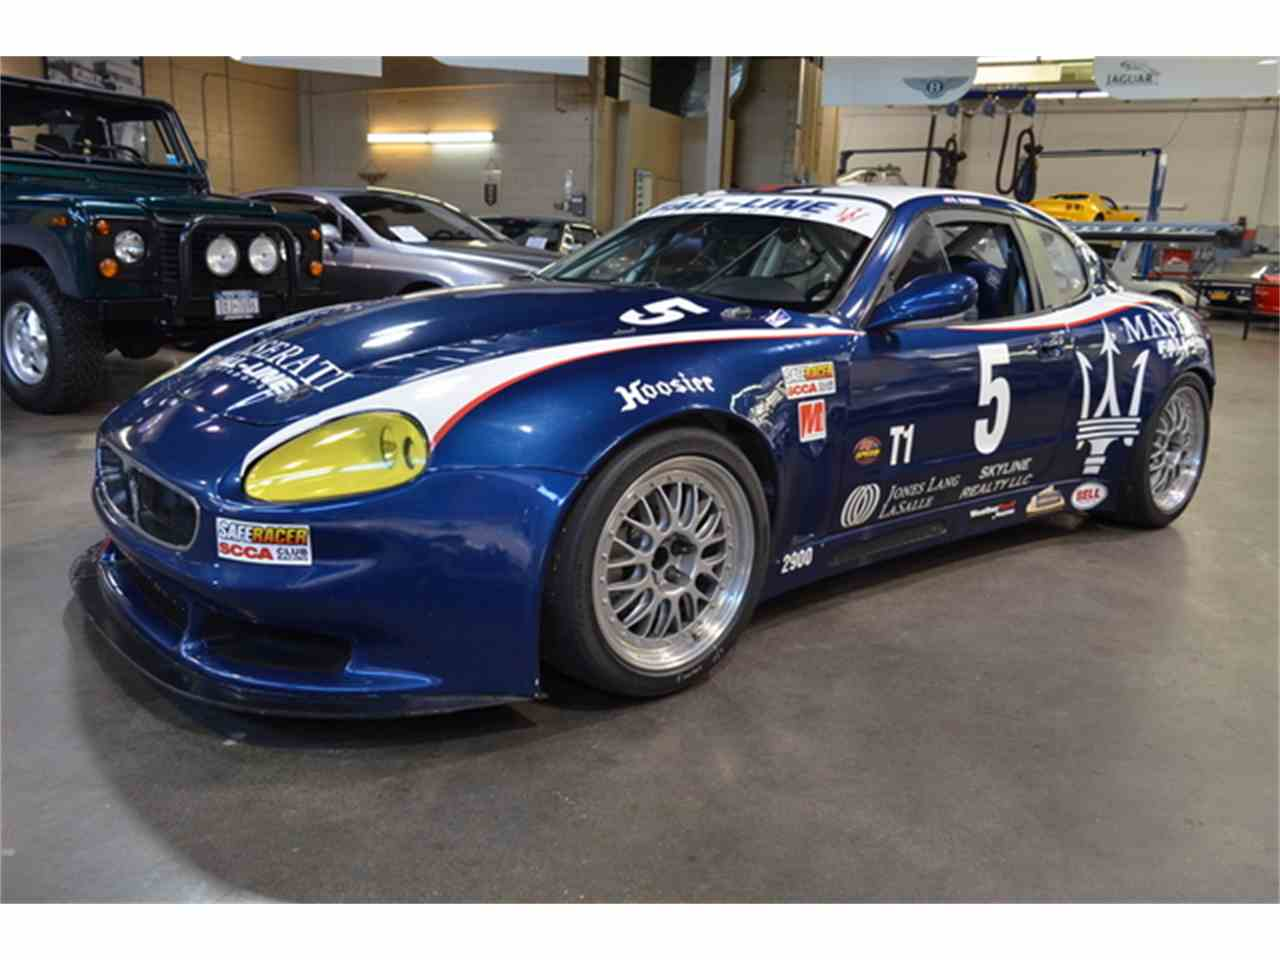 https://ccmarketplace.azureedge.net/cc-temp/listing/101/1262/9188235-2005-maserati-trofeo-light-std-c.jpg